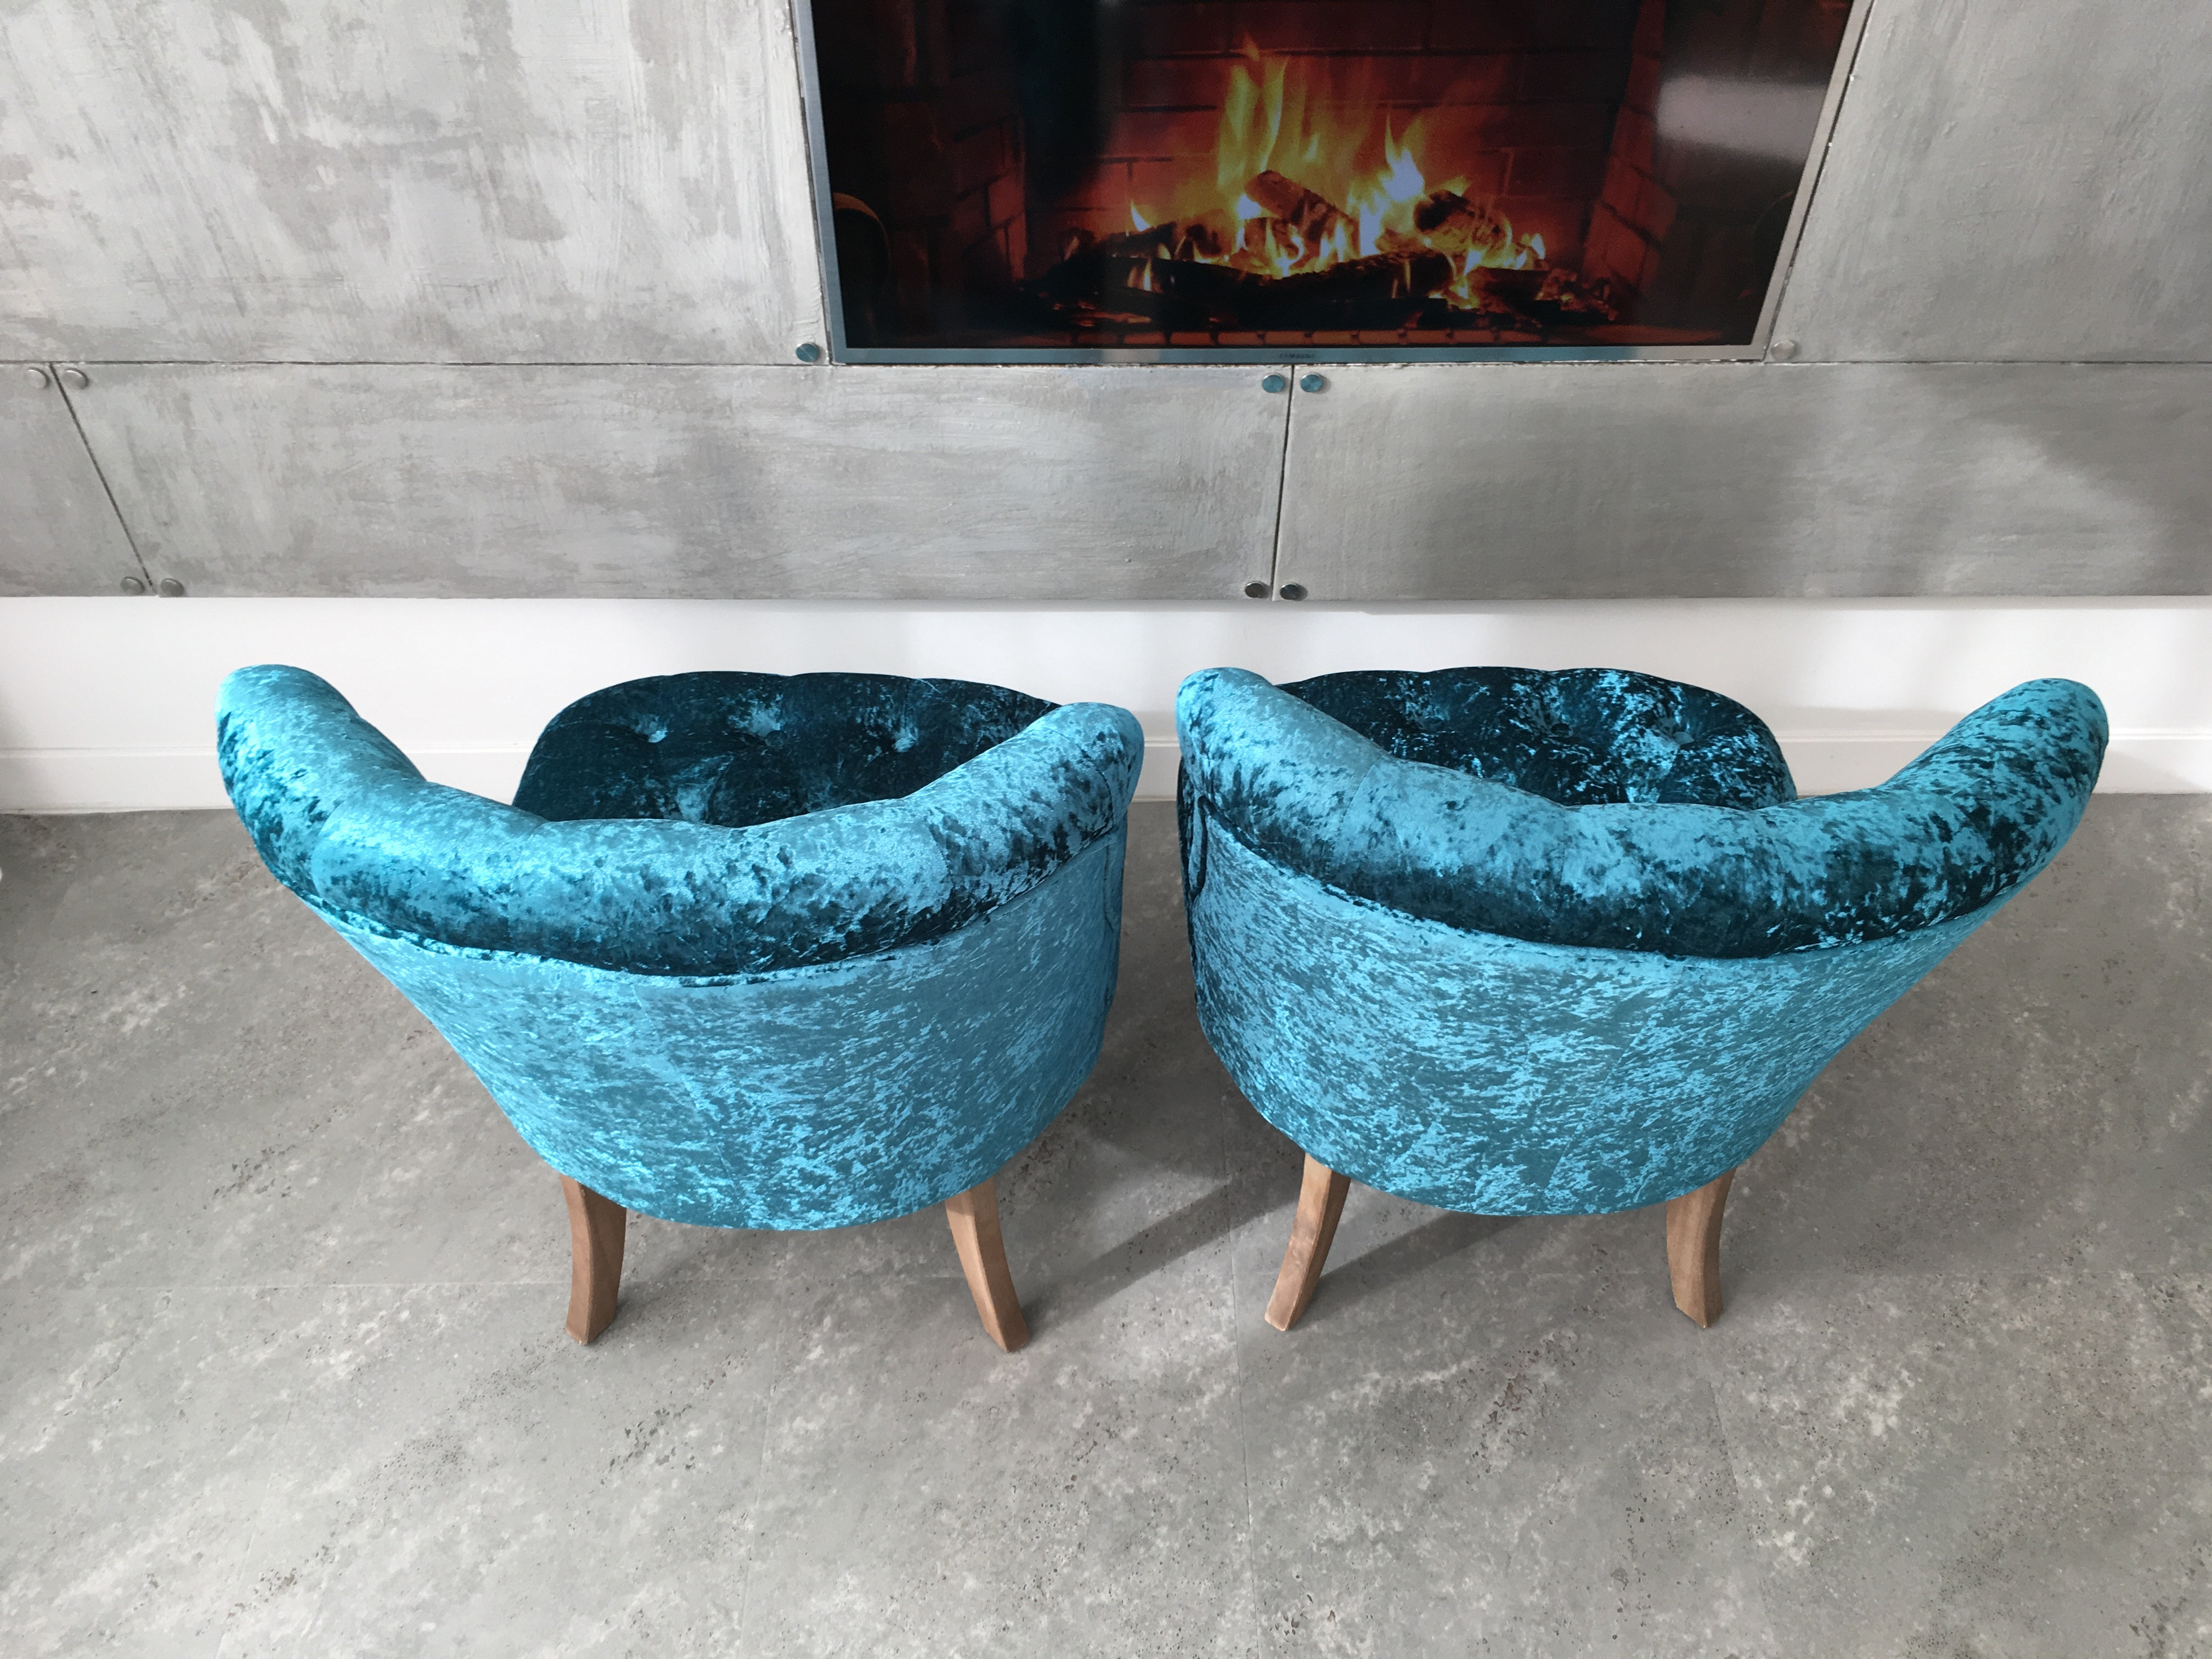 Design Unique Bampton turquoise blue Crushed Velvet Armchairs Chair set of 2 | areadesignlimited